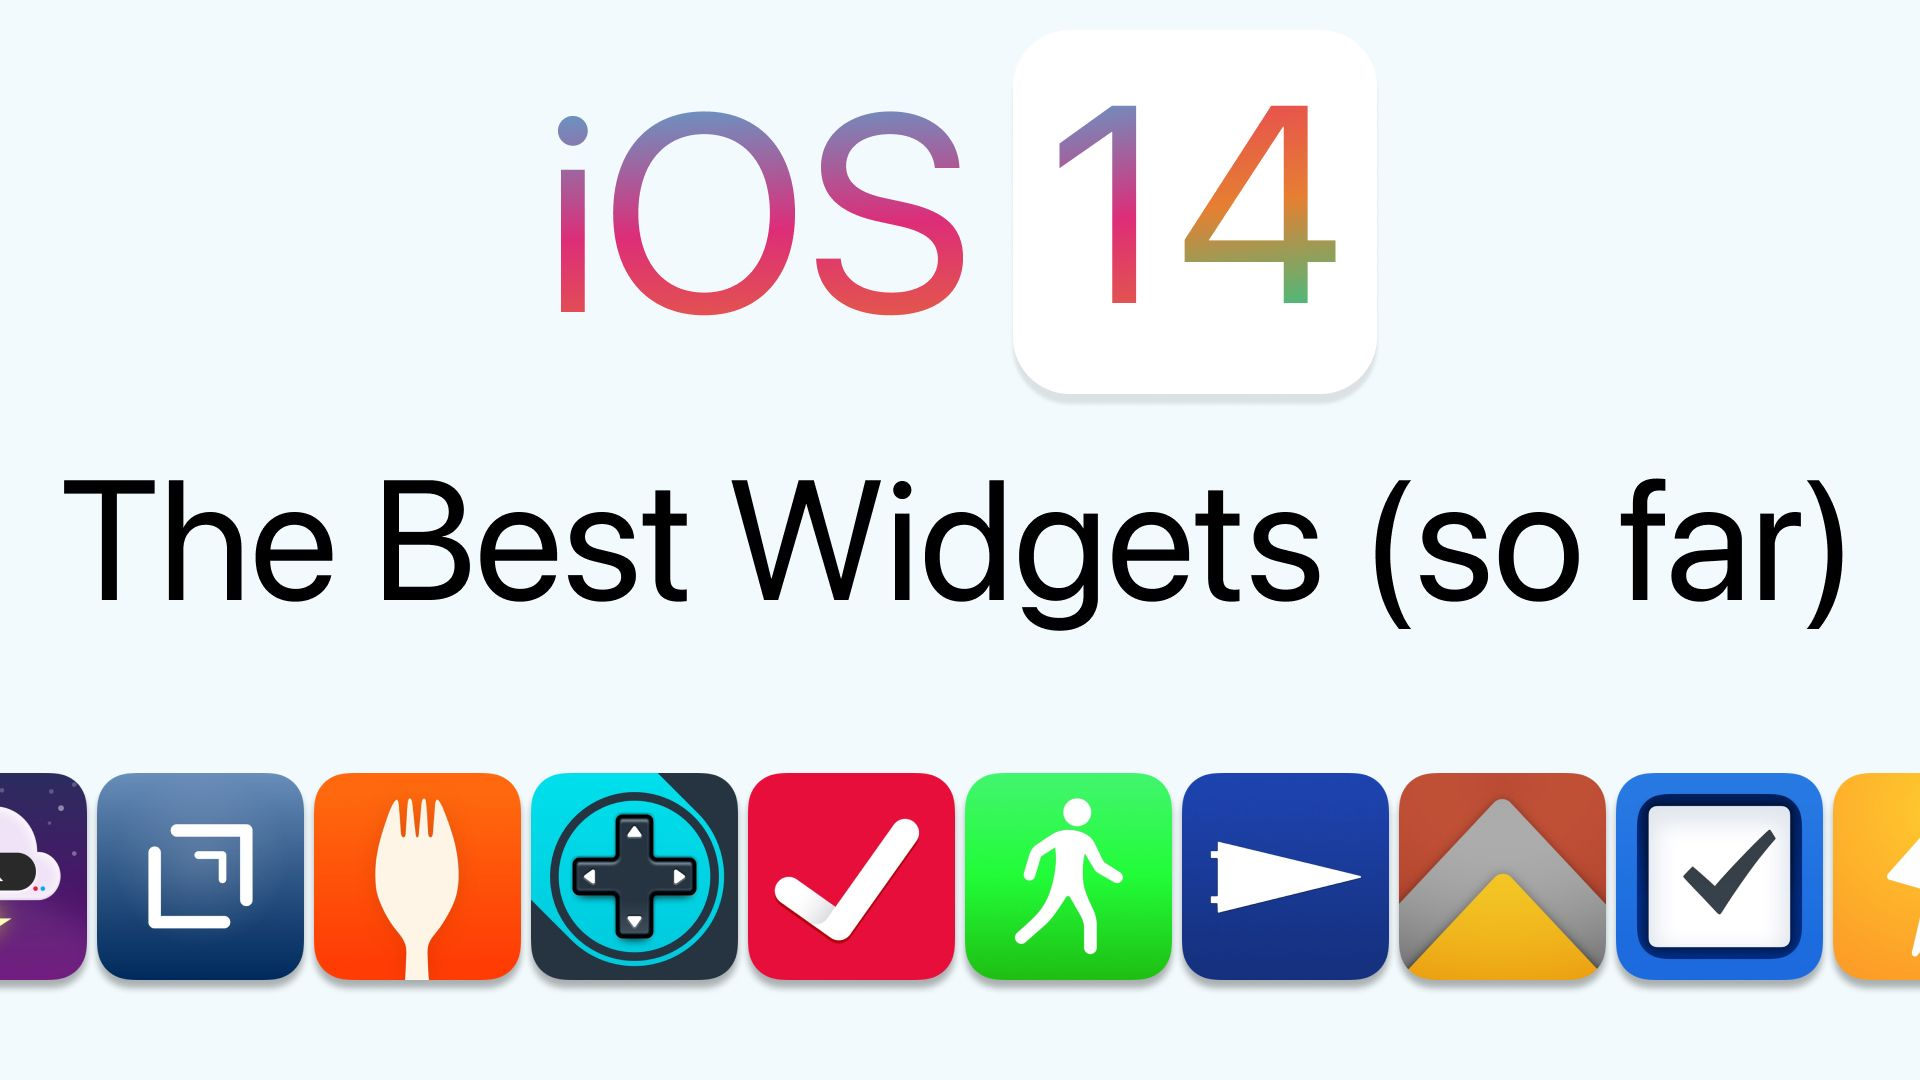 10 of the Best Widgets I've Found in iOS 14 (so far)